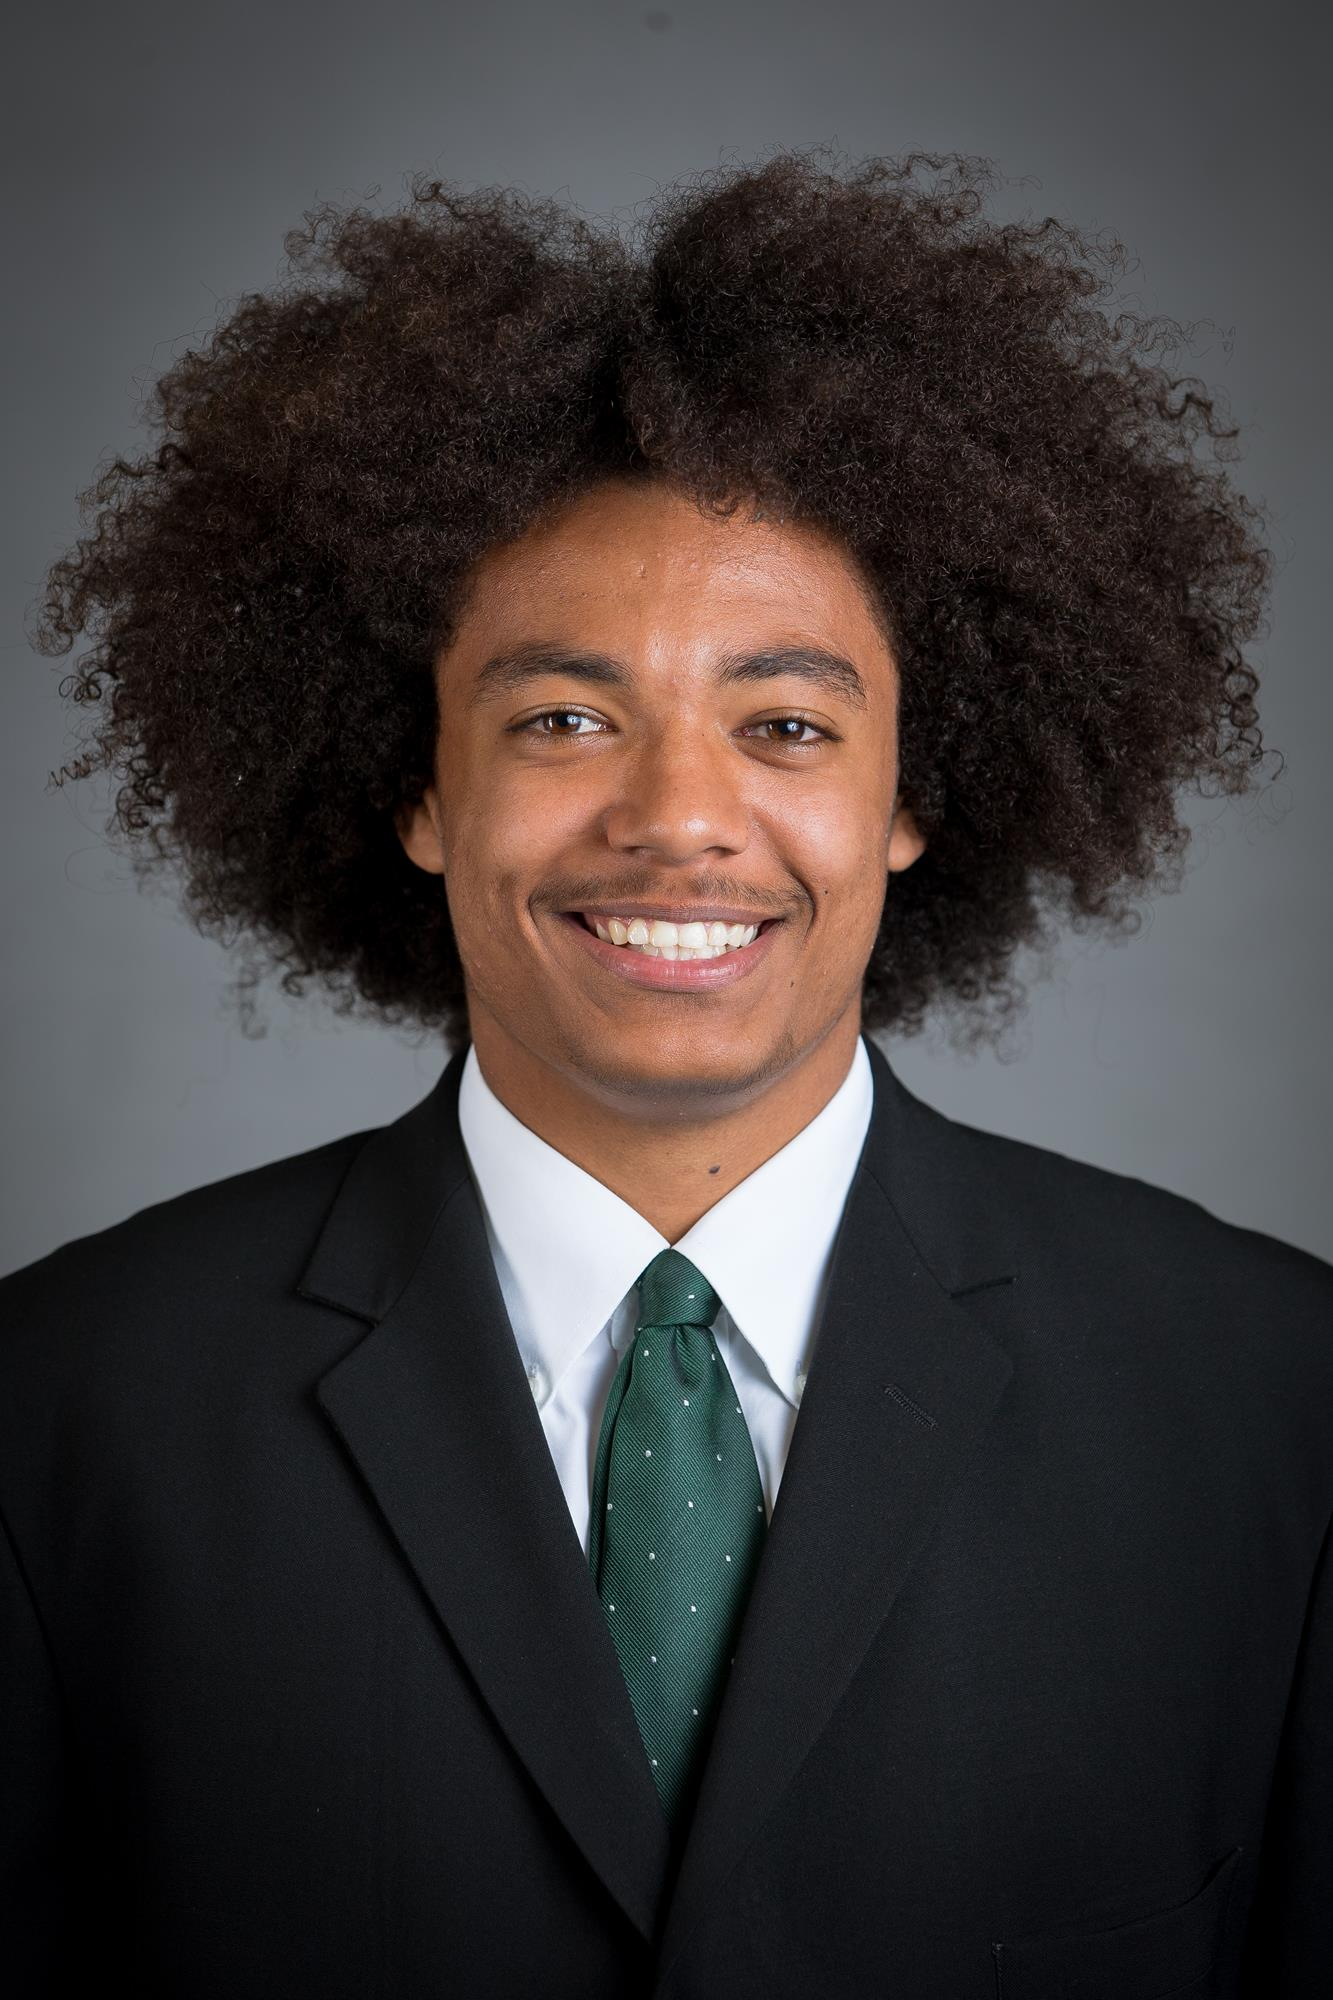 2020 Football Roster Michigan State University Athletics